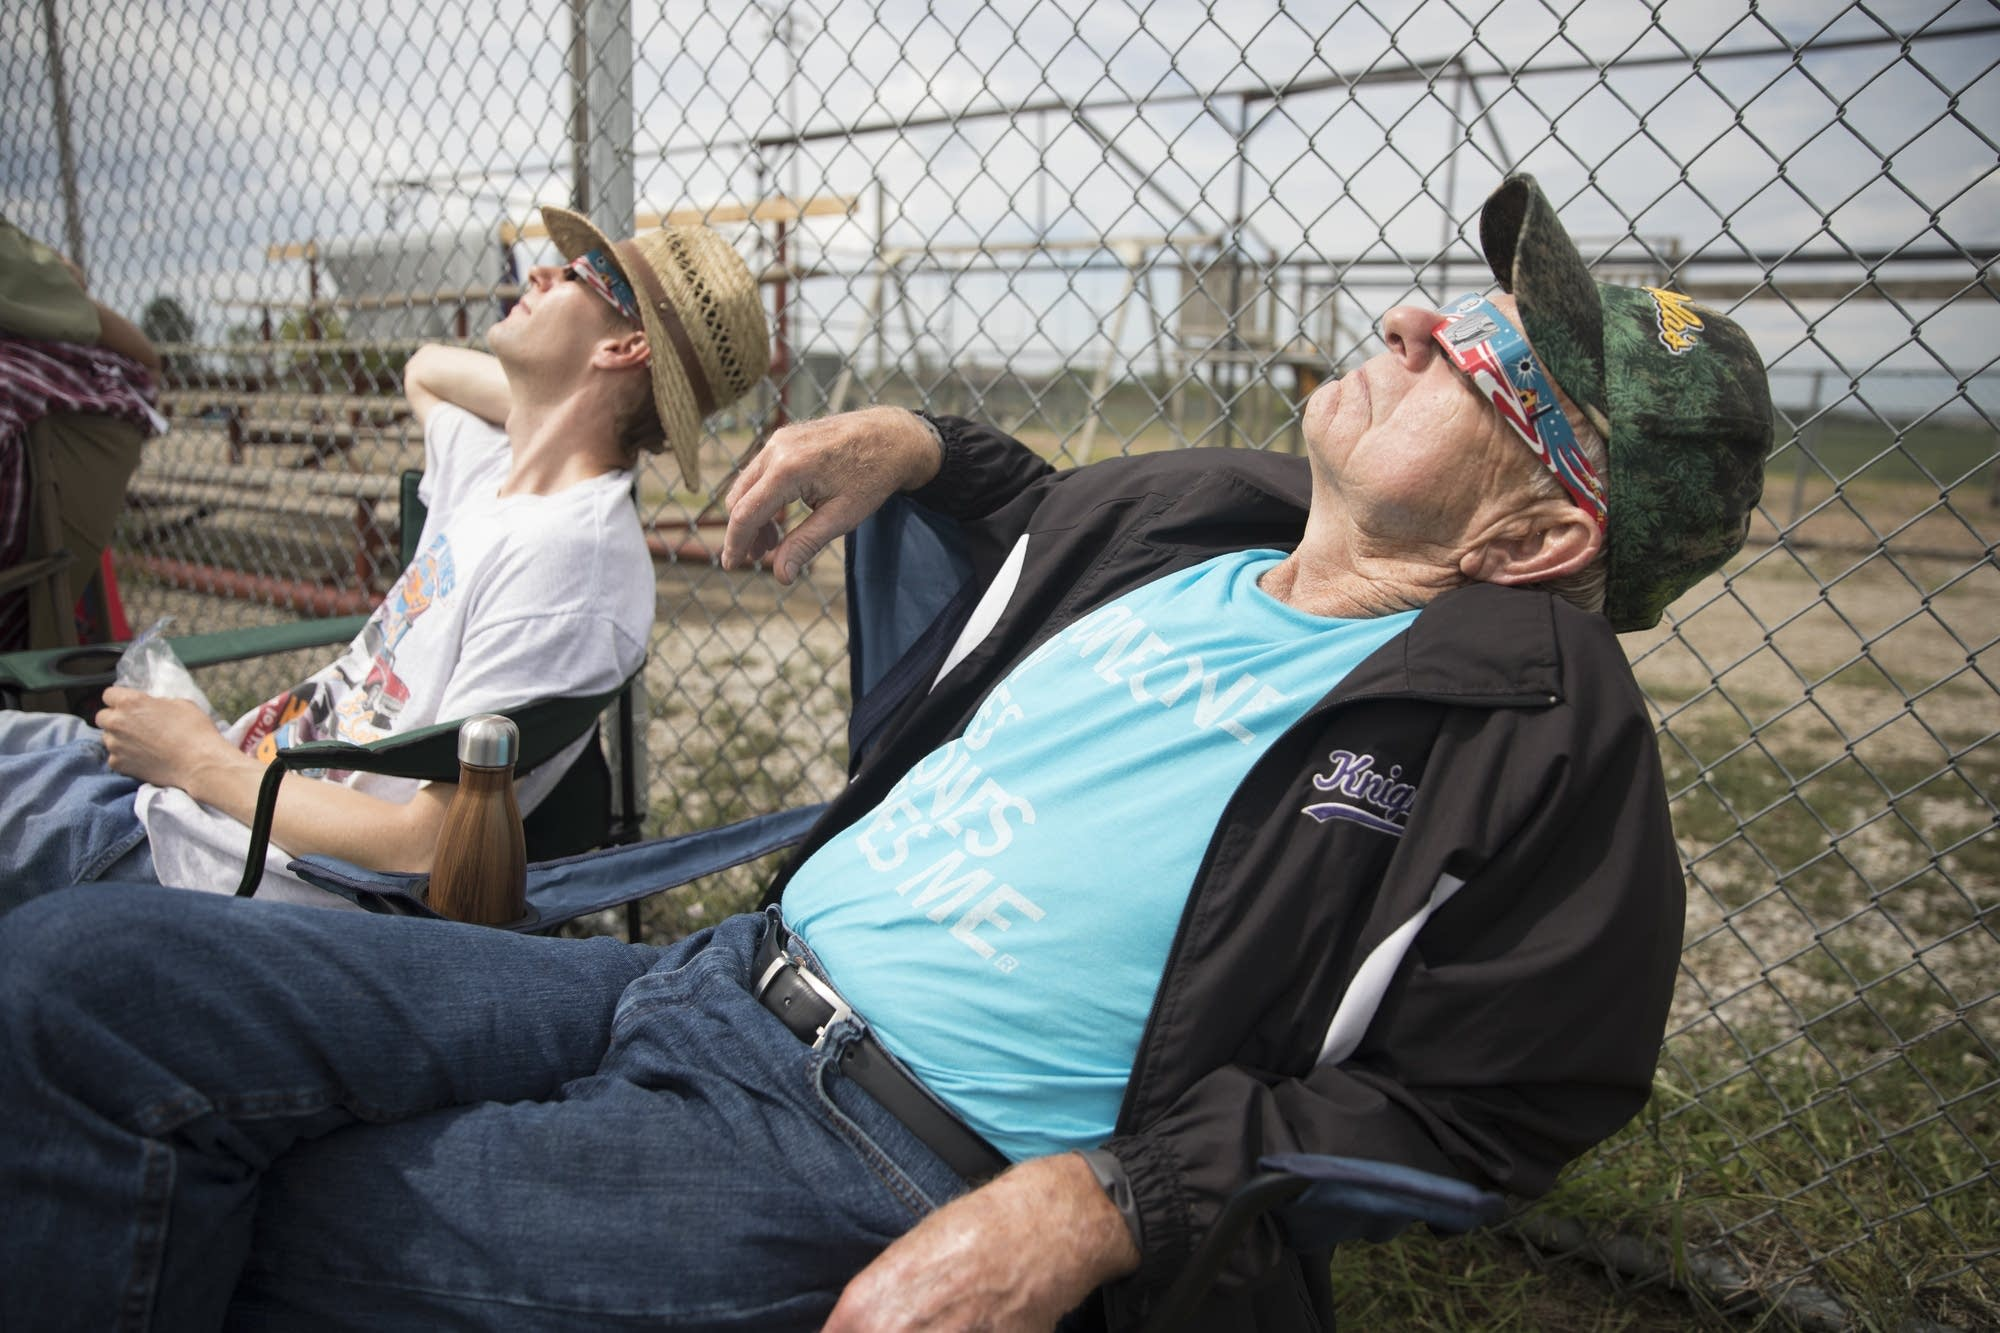 Clark Hammer, right, and Ryan Rasmussen sit back to watch the eclipse.